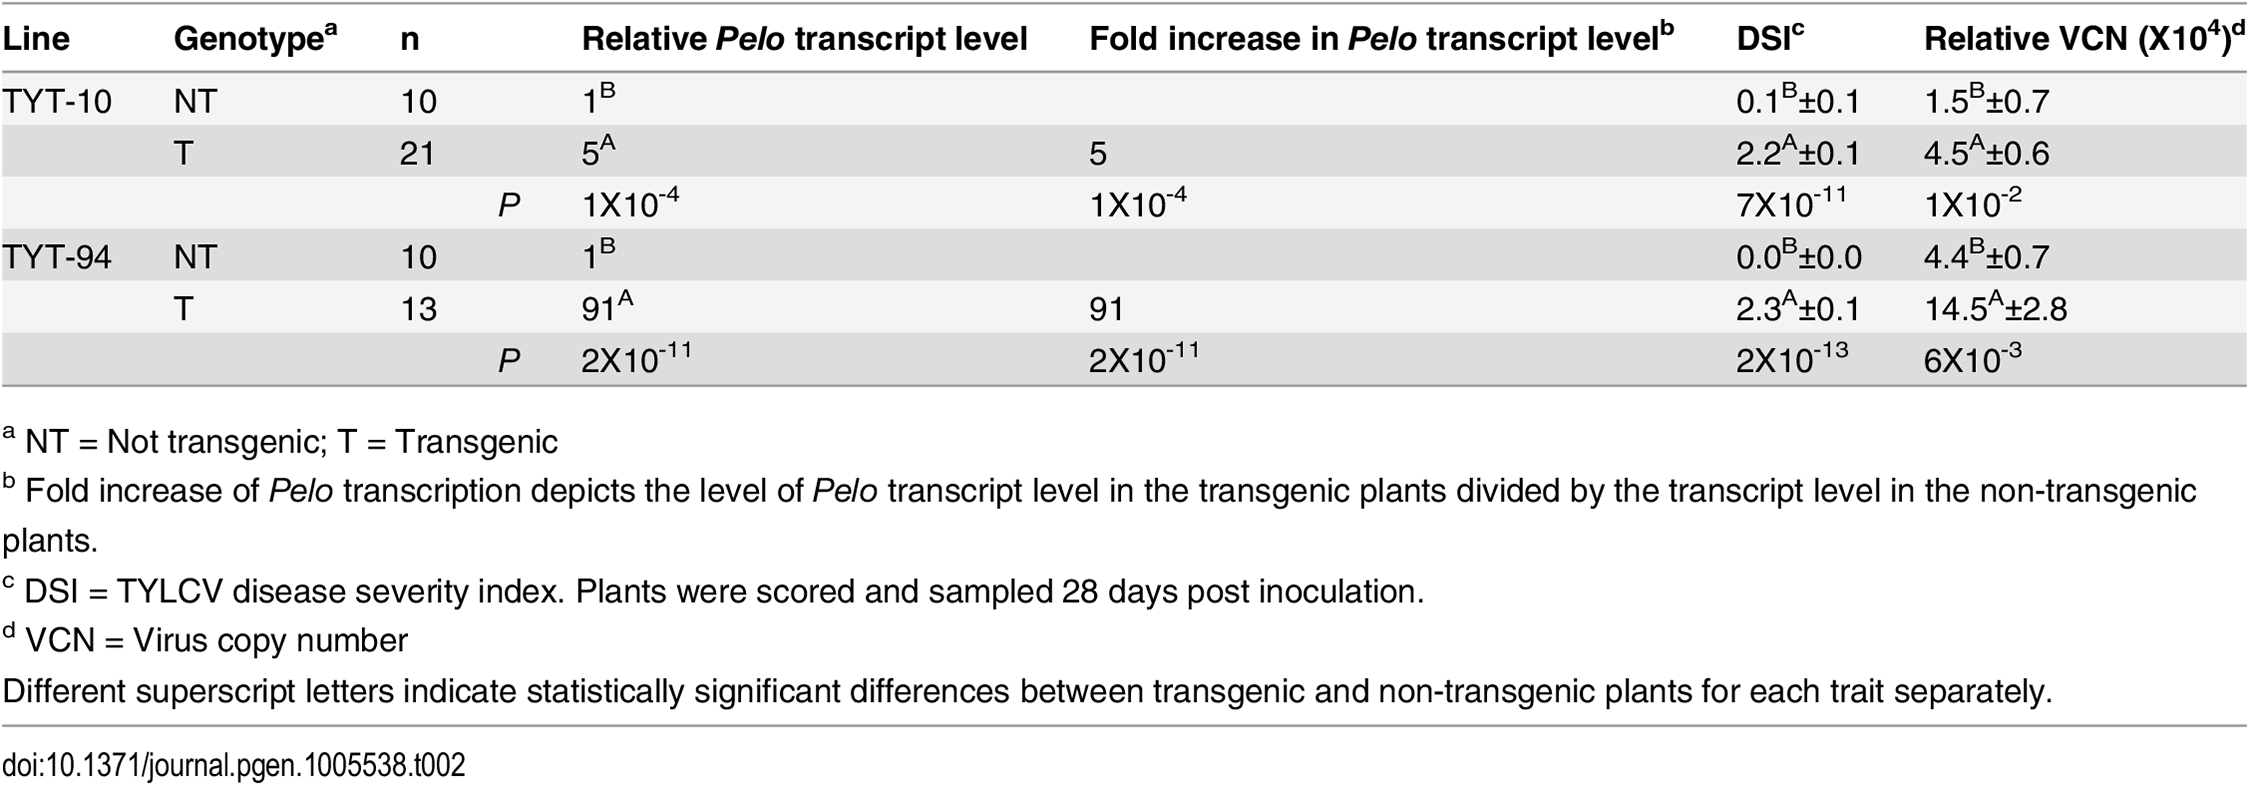 Effect of over-expressing the <i>Pelo</i> allele from M-82 plants in transgenic TY172 plants.